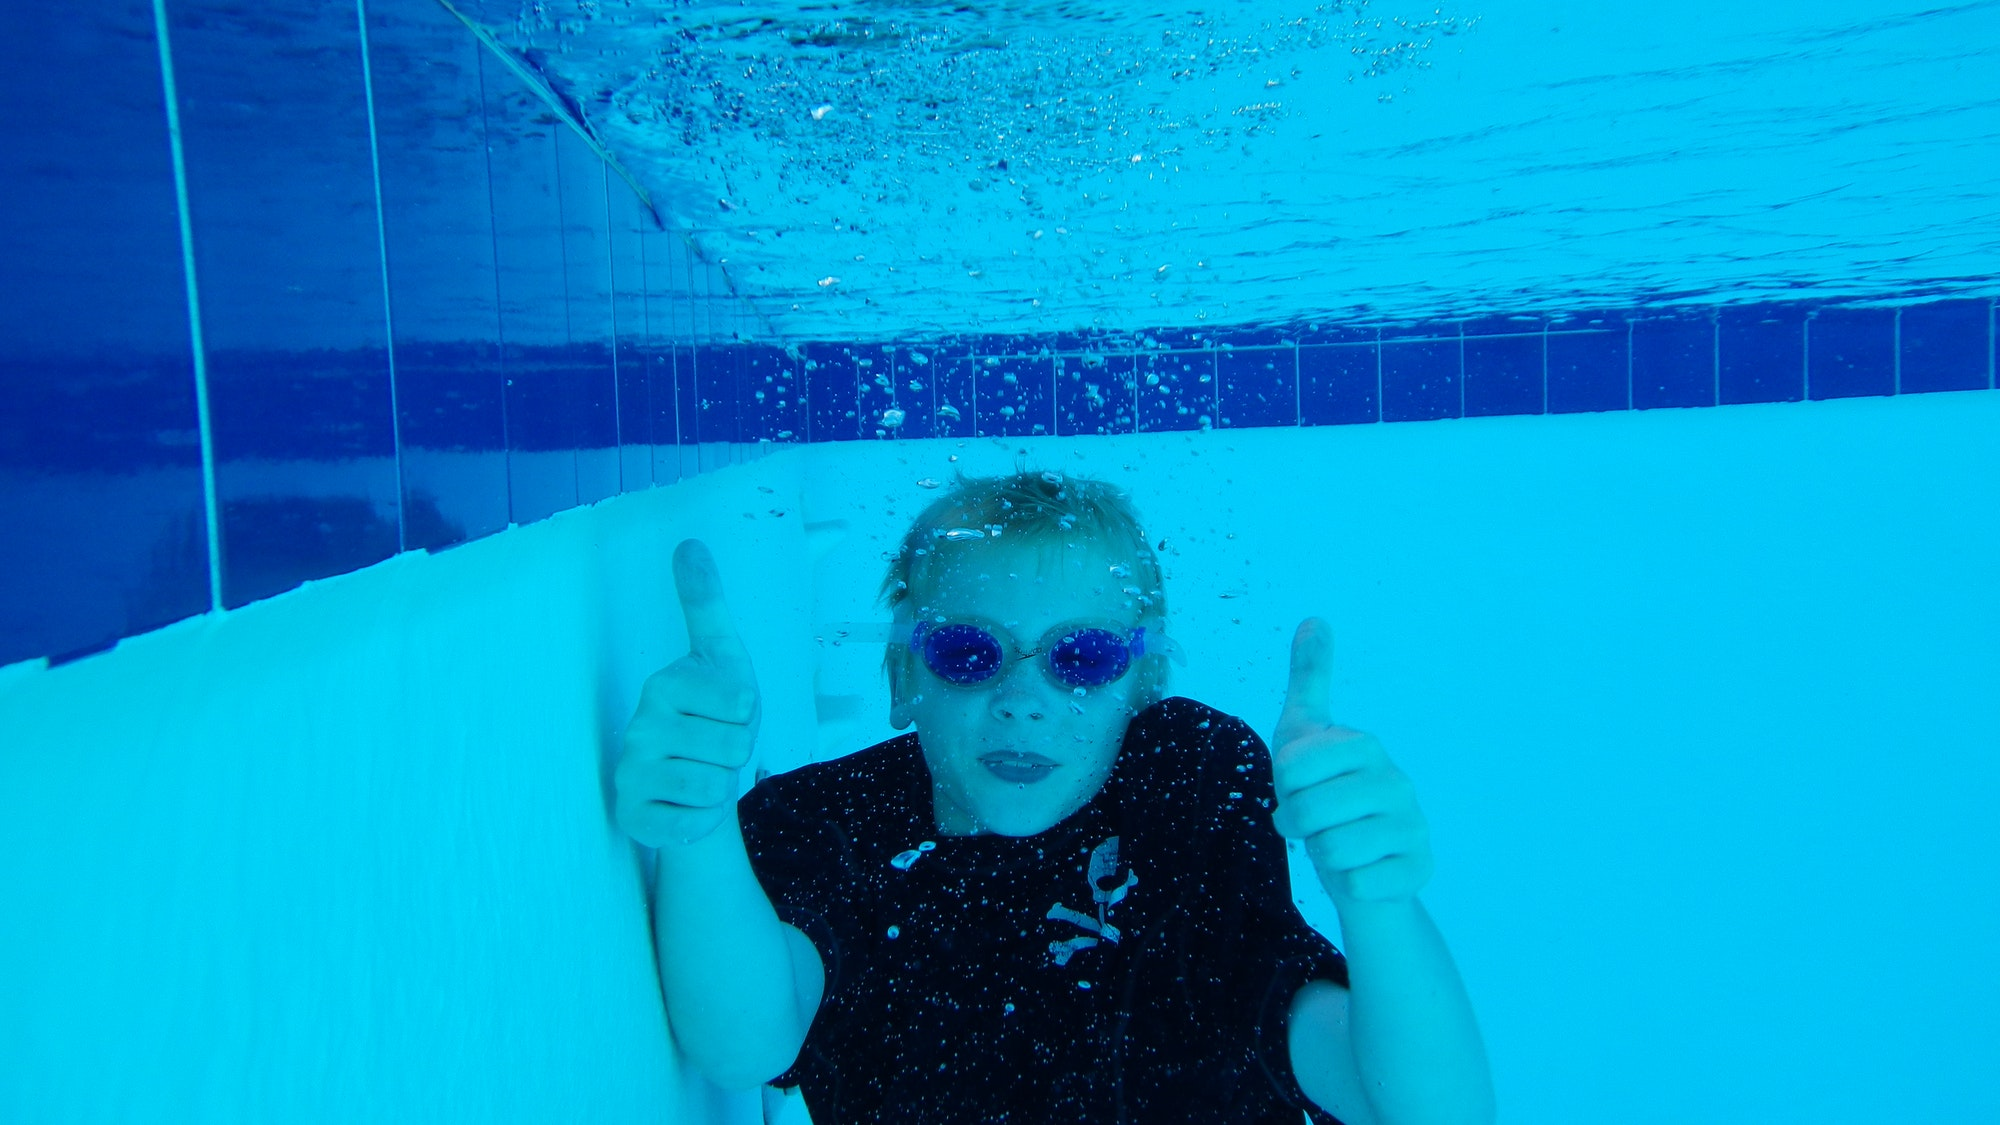 May contain: nature, underwater, outdoors, water, person, human, sunglasses, accessories, accessory, and finger